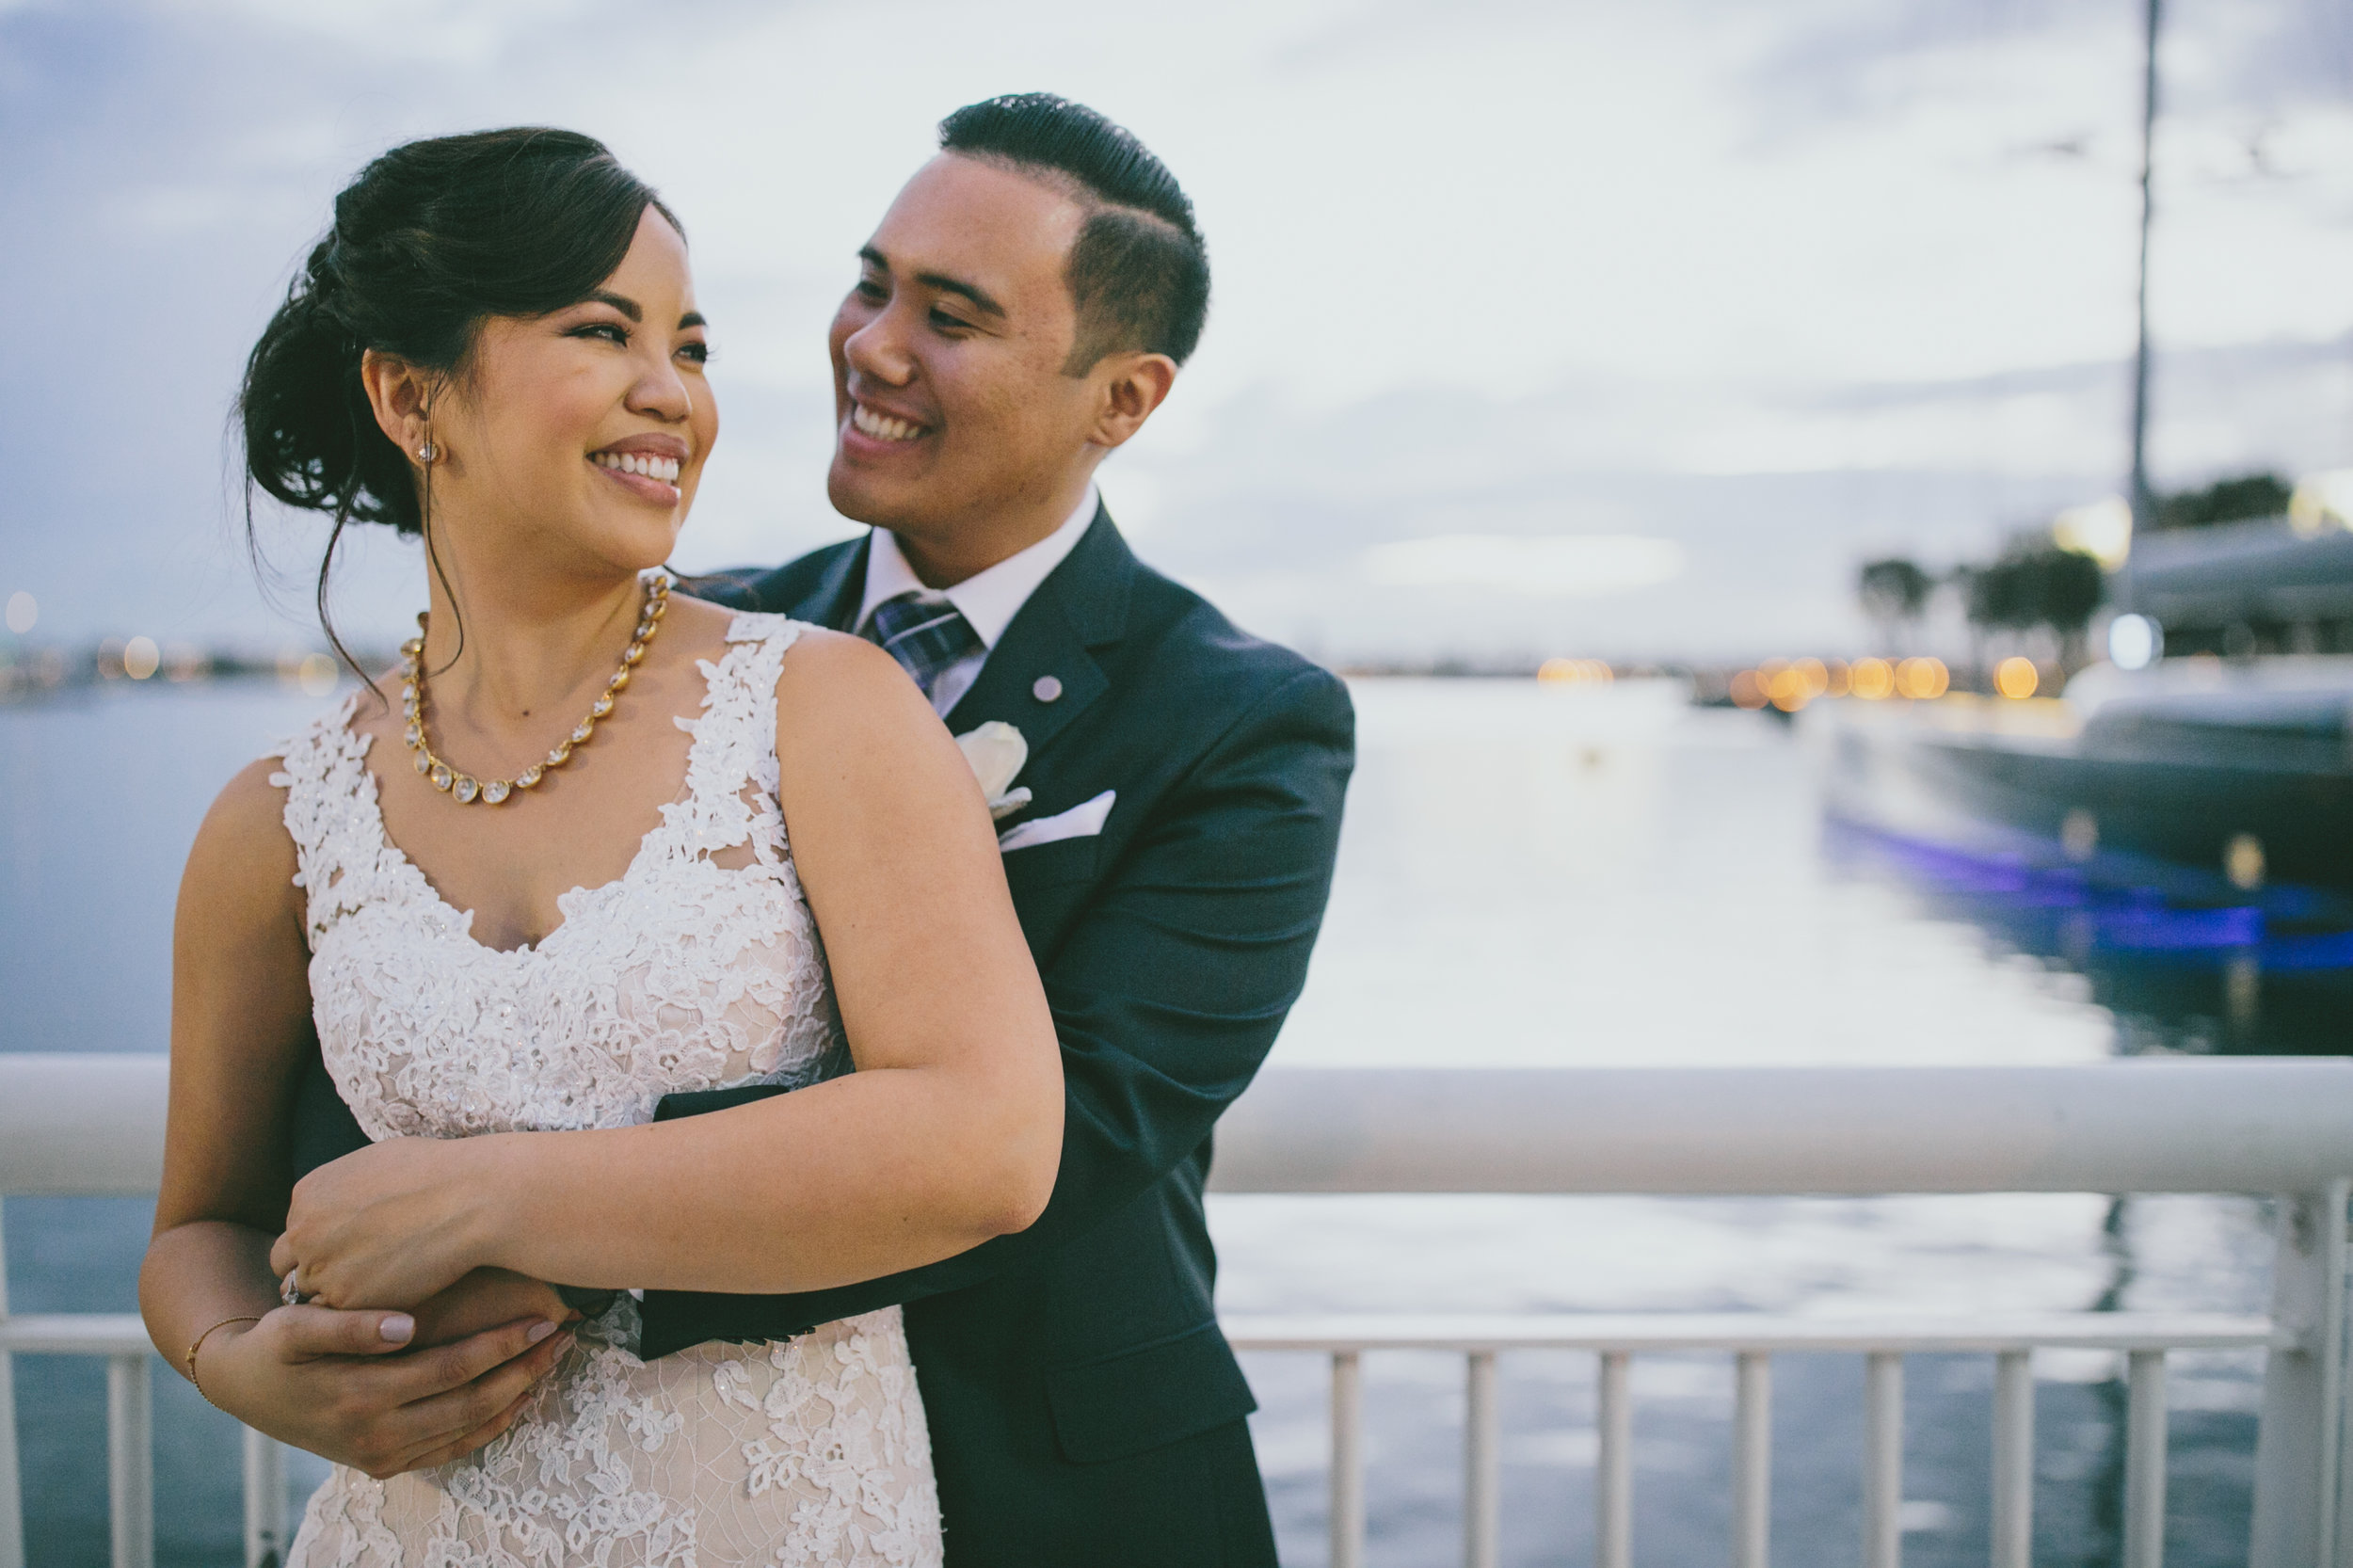 Jenny & Mark - St. Mary's Catholic Church - Tom Ham's Lighthouse  - San Diego, CA